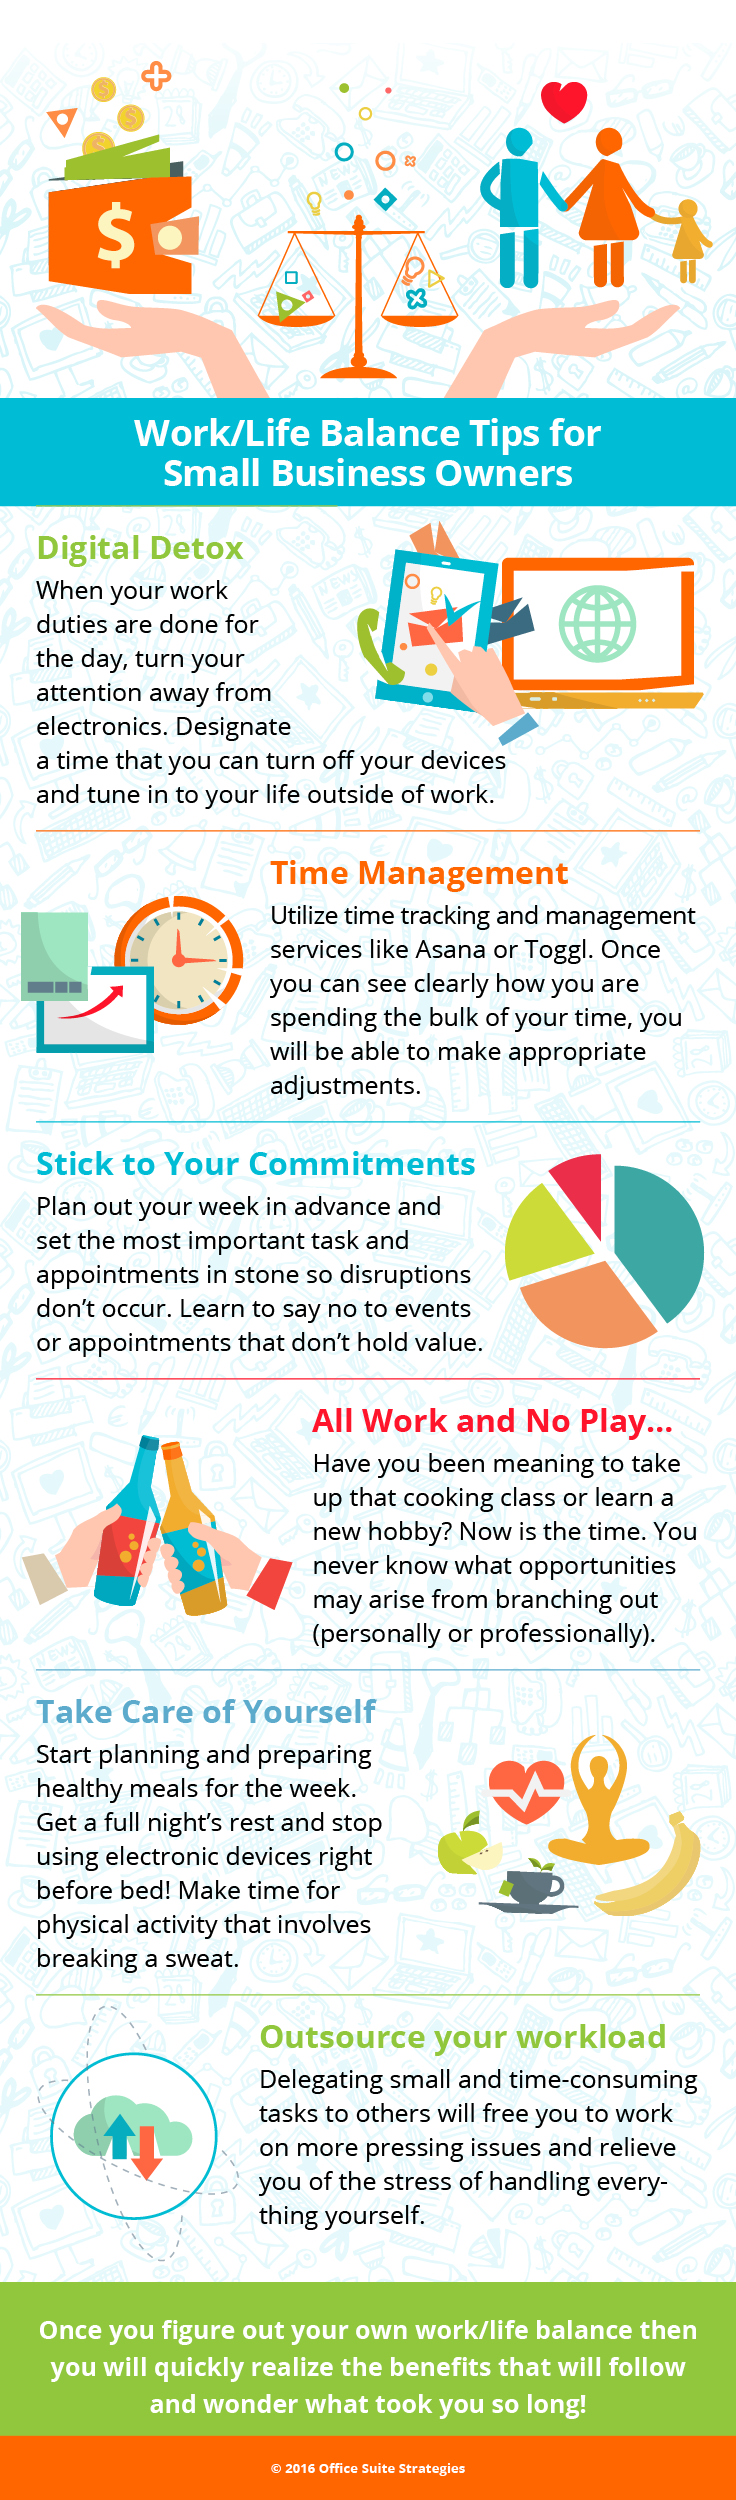 infographic to help balance work and life for small business owners